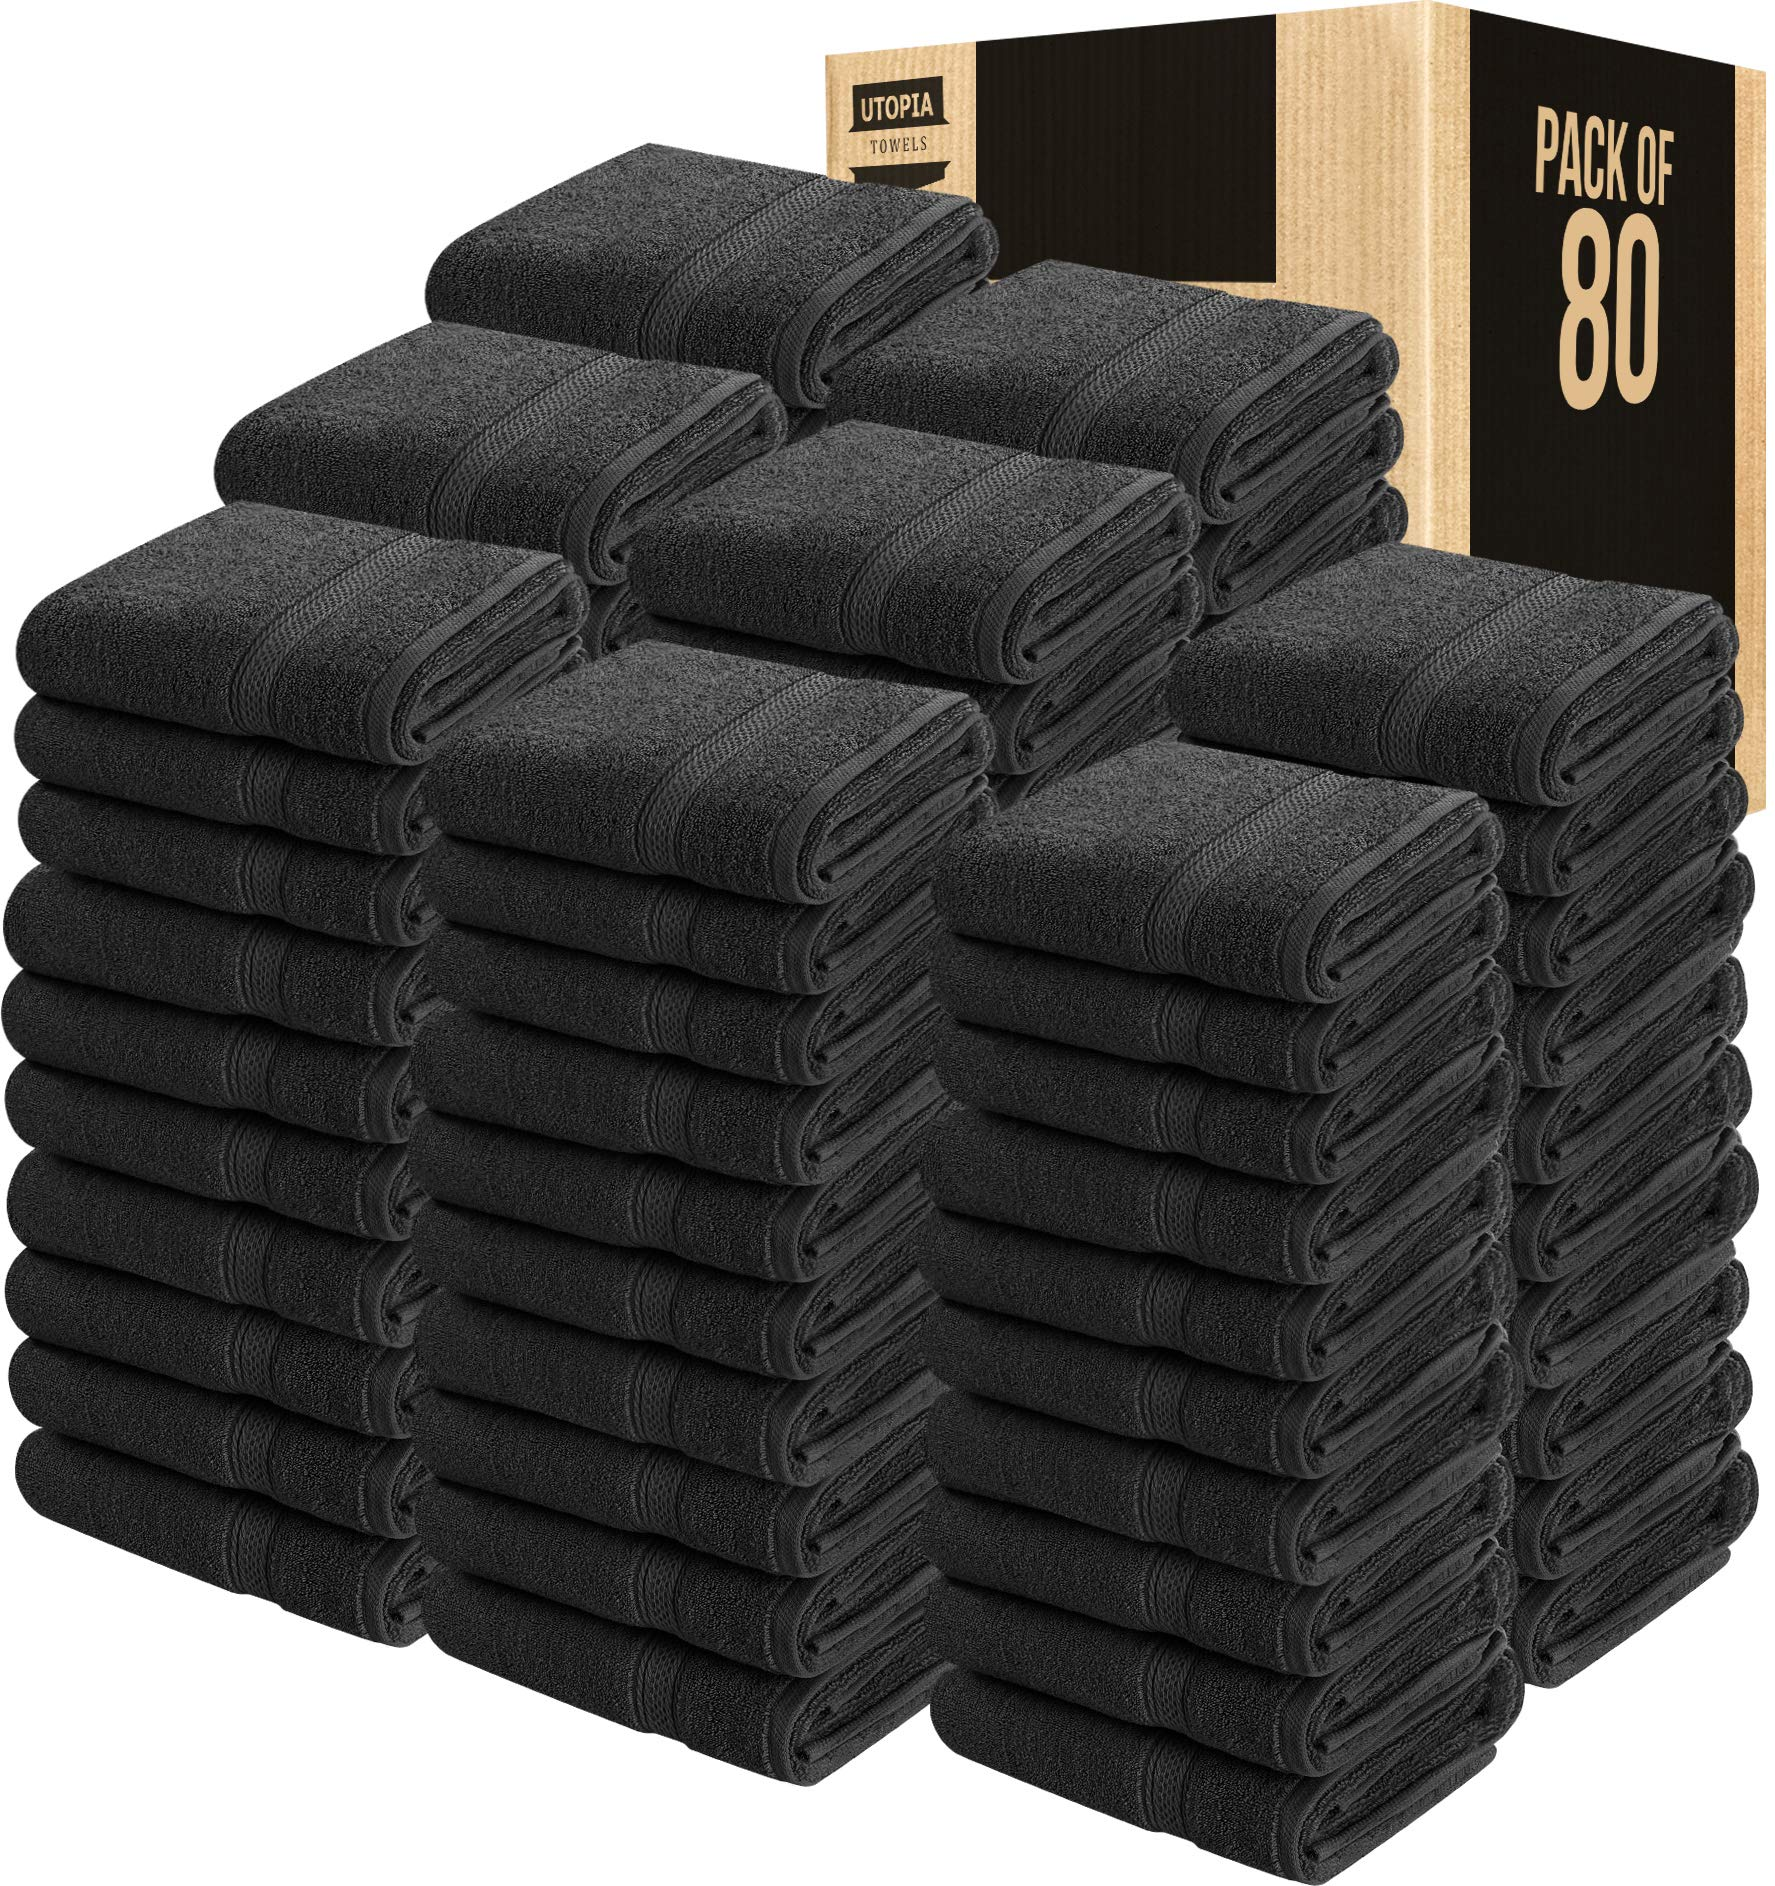 Utopia Towels 80 Pack 600 GSM Cotton Large Hand Towels Bulk (16 x 28 Inches), Dark Grey